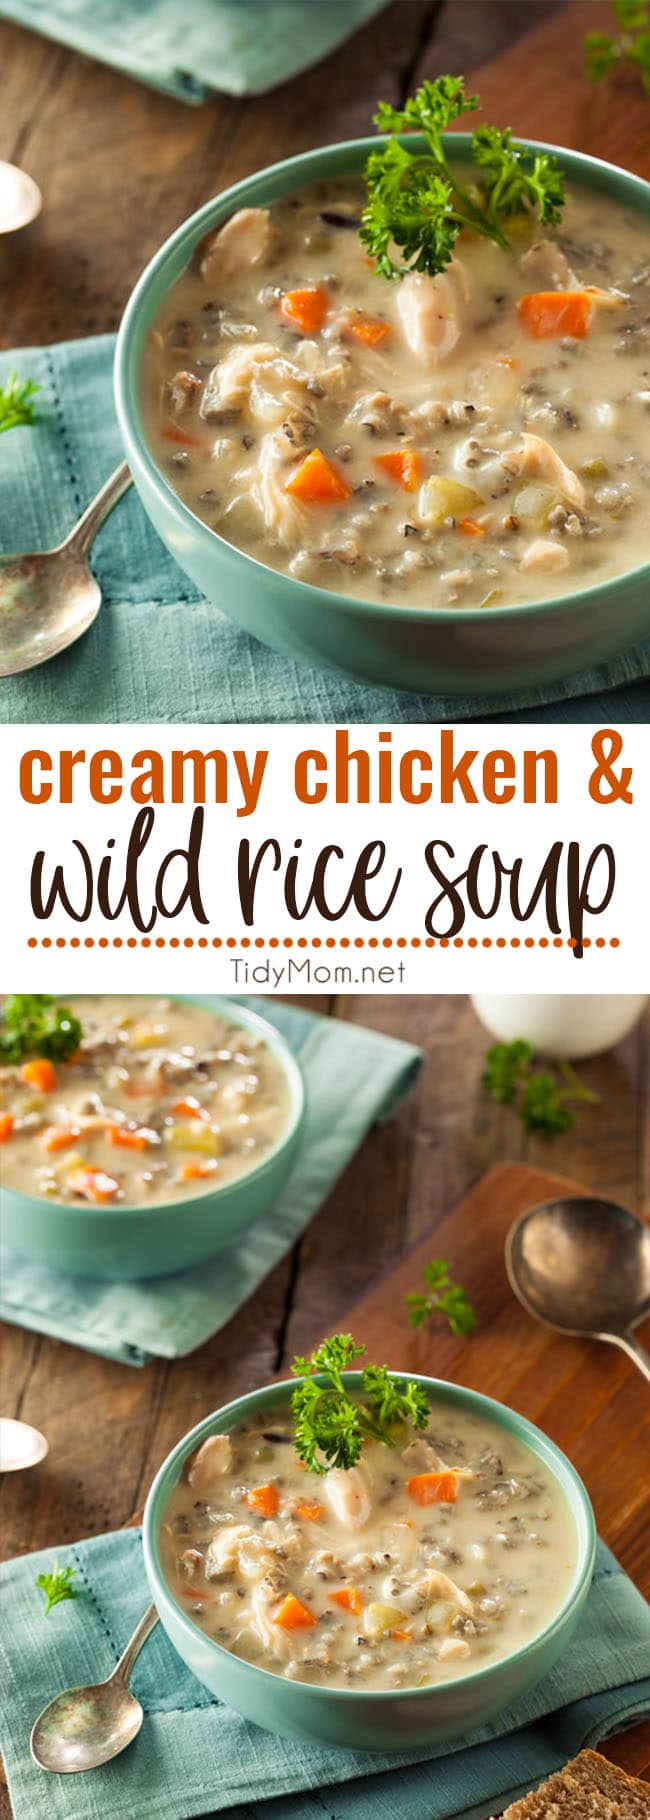 This Panera Copycat Creamy Chicken and Wild Rice Soup continues to be a family favorite. It's delicious and hearty, perfect for cold winter nights. Printable recipe + video at TidyMom.net #soup #wildrice #copycatrecipe #chicken #chickenrecipe